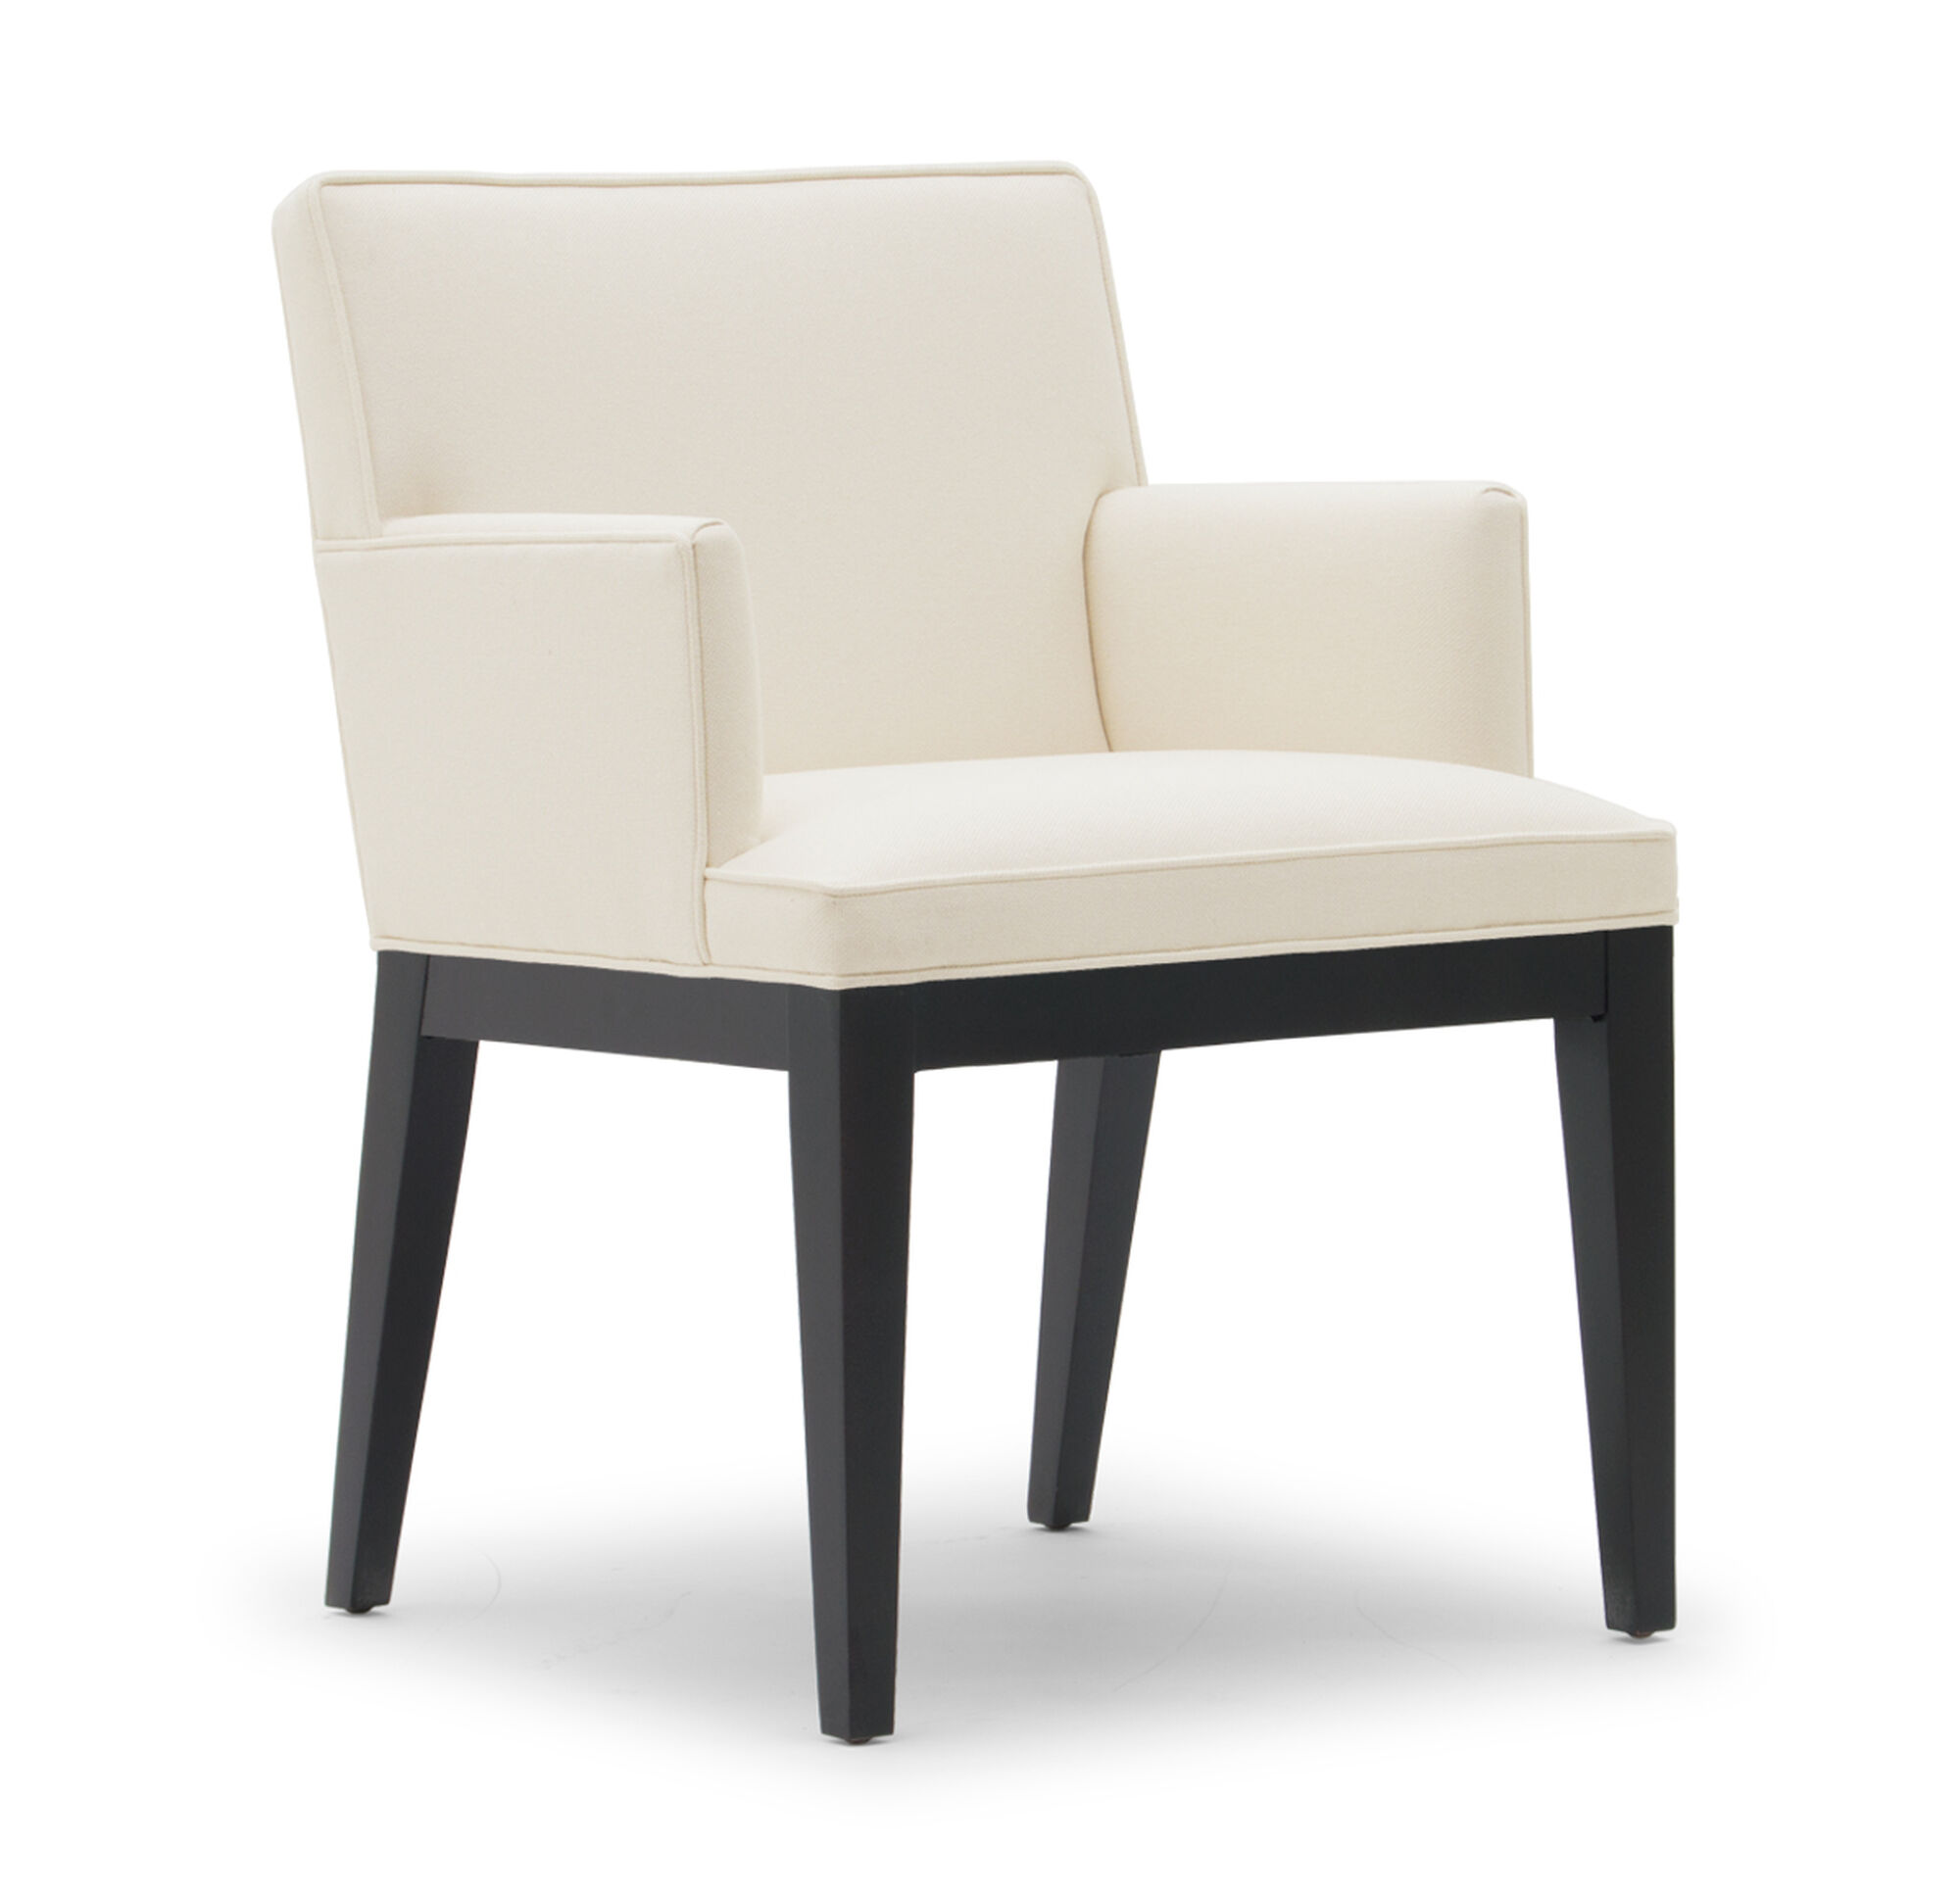 Cameron Arm Dining Chair Hi Res